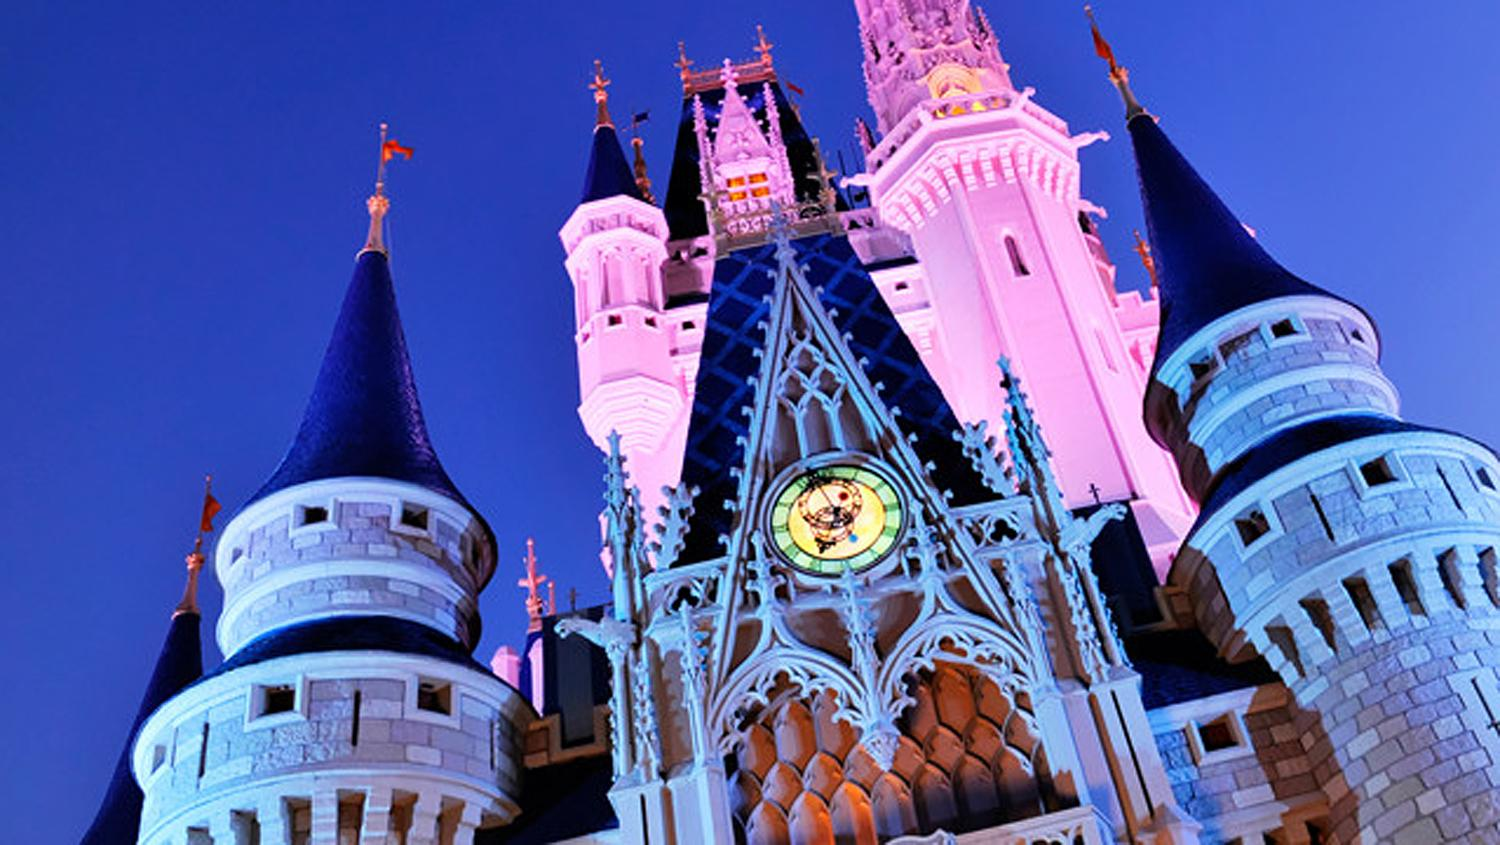 Magic Kingdom ist ein Vergnügungspark im Walt Disney World Resort in Florida.